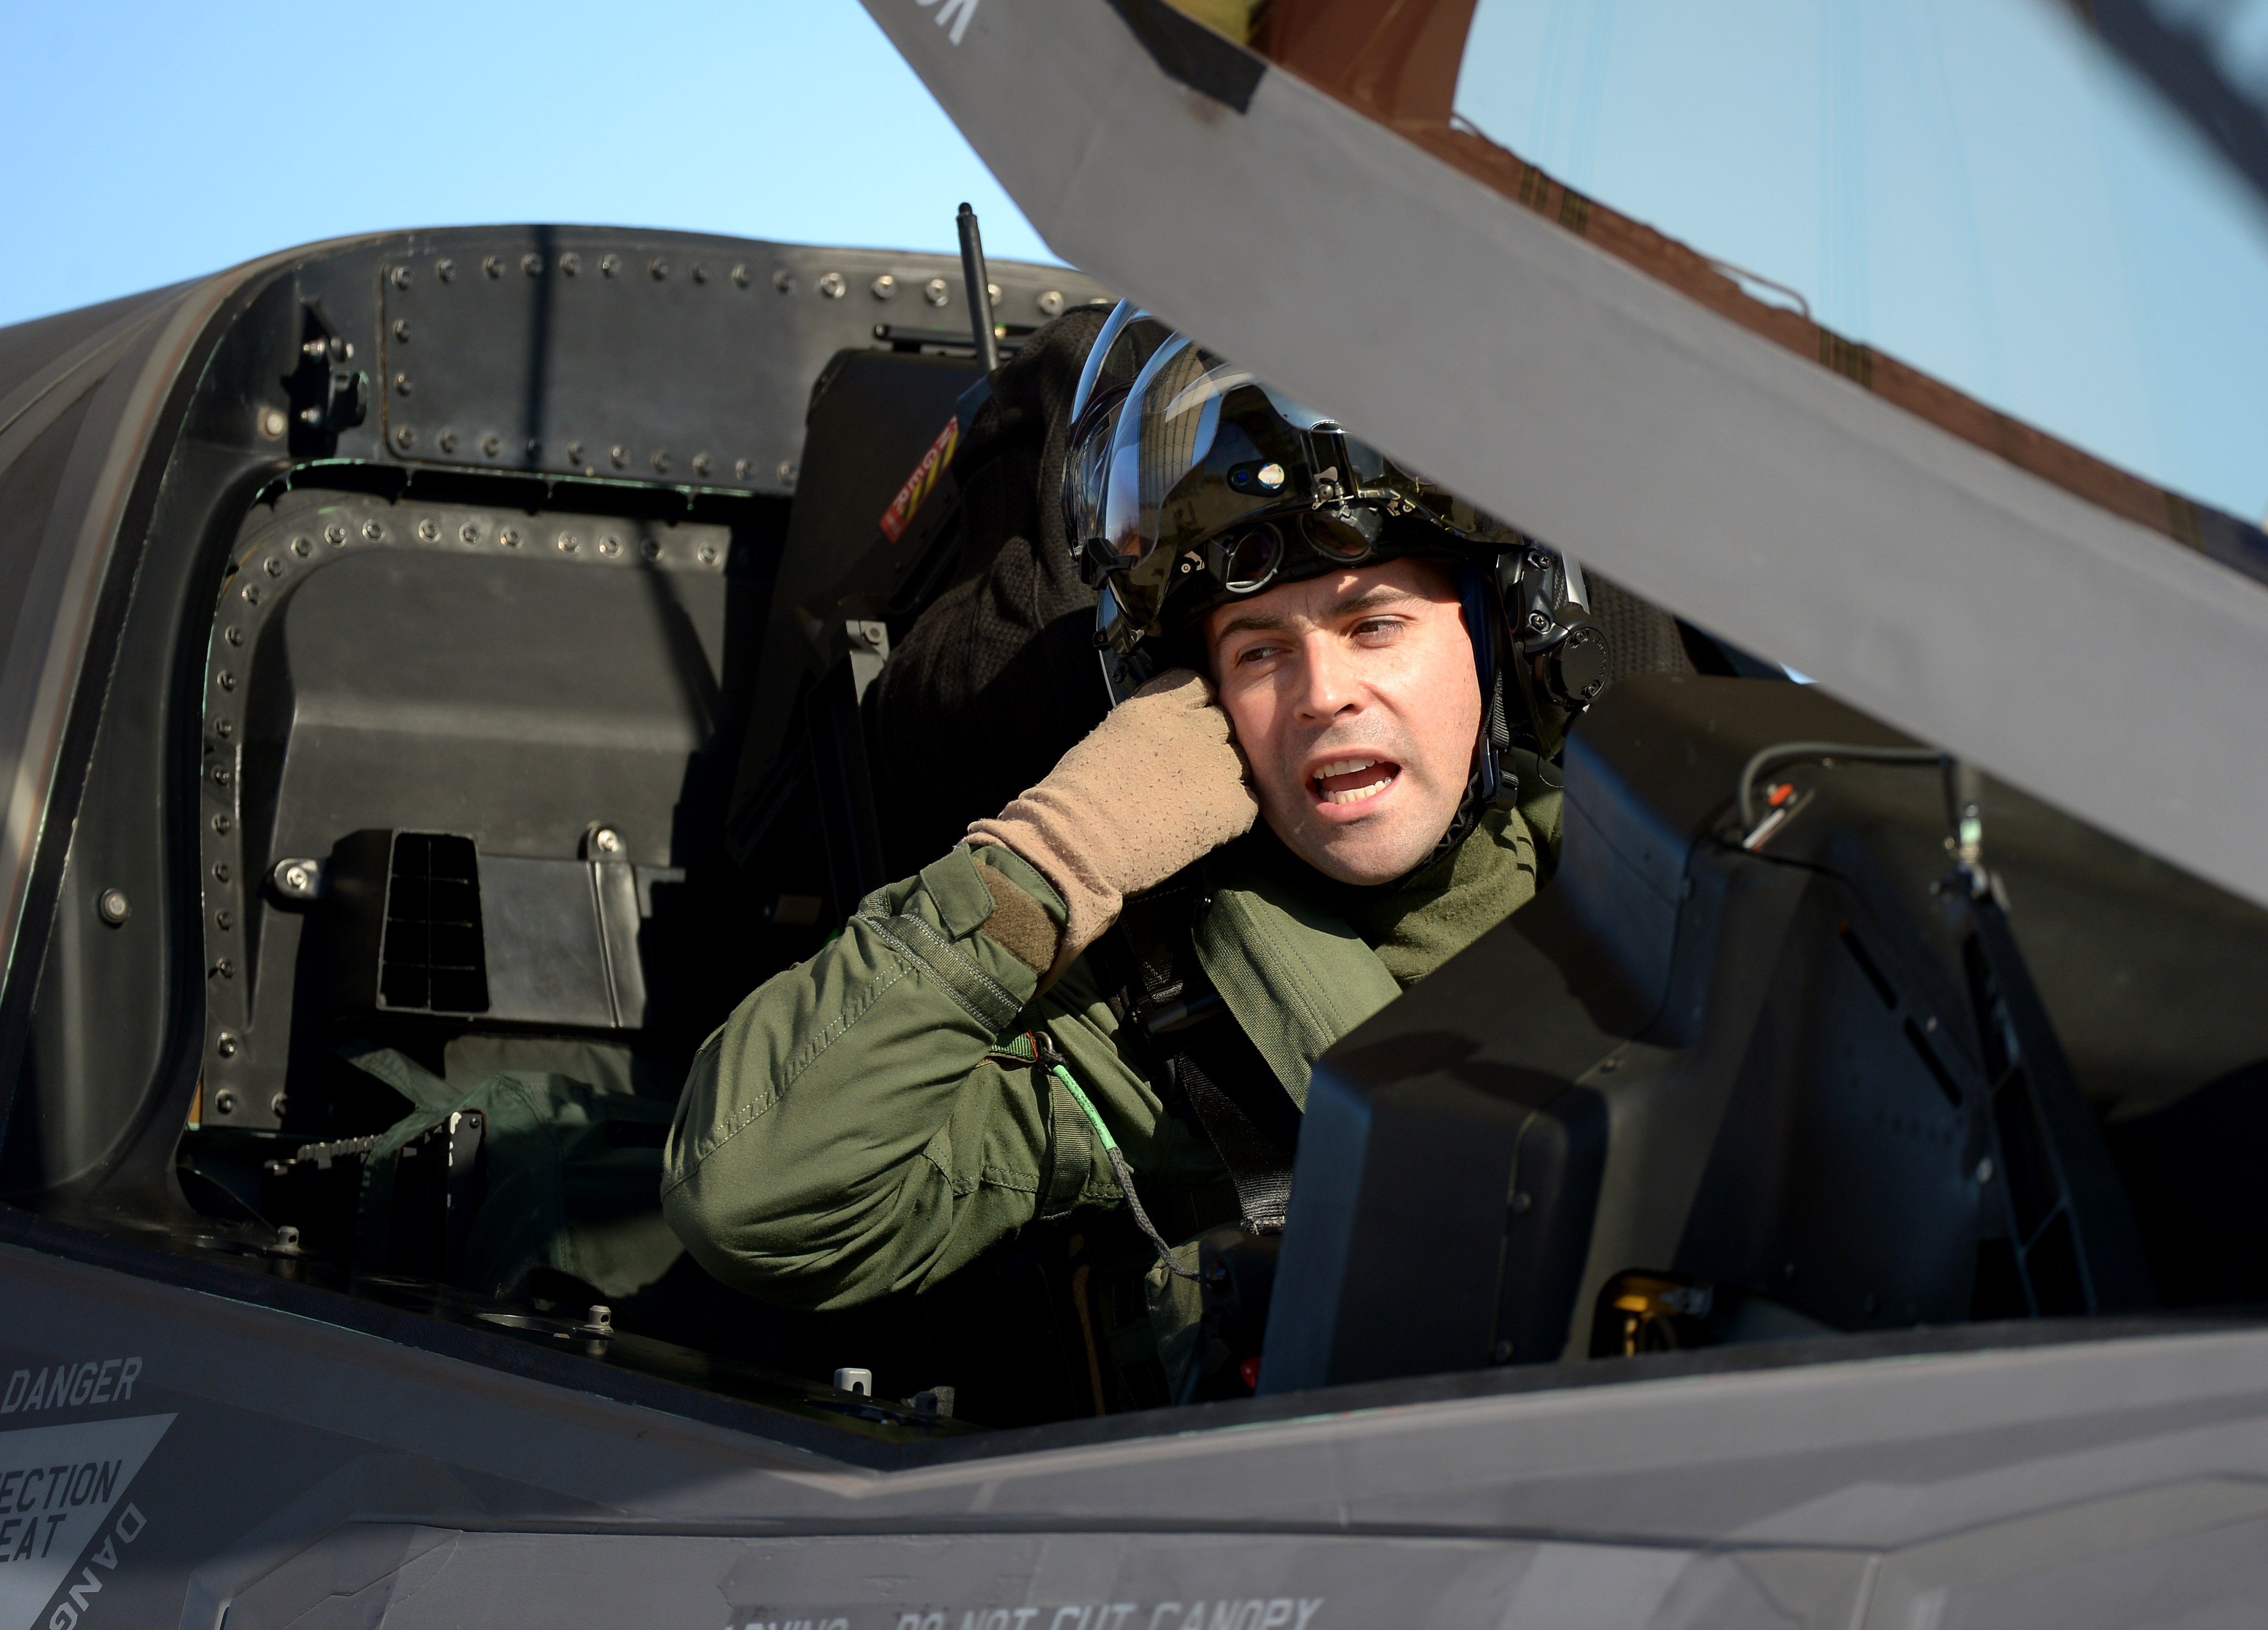 U.S. Marine Corps test pilot Maj. Richard Rusnok goes over his pre-flight check list in the cockpit of the  F-35B Lightning II aircraft BF-4p prior to a test flight at Naval Air Station Patuxent River on March 7, 2013 in Patuxent, MD